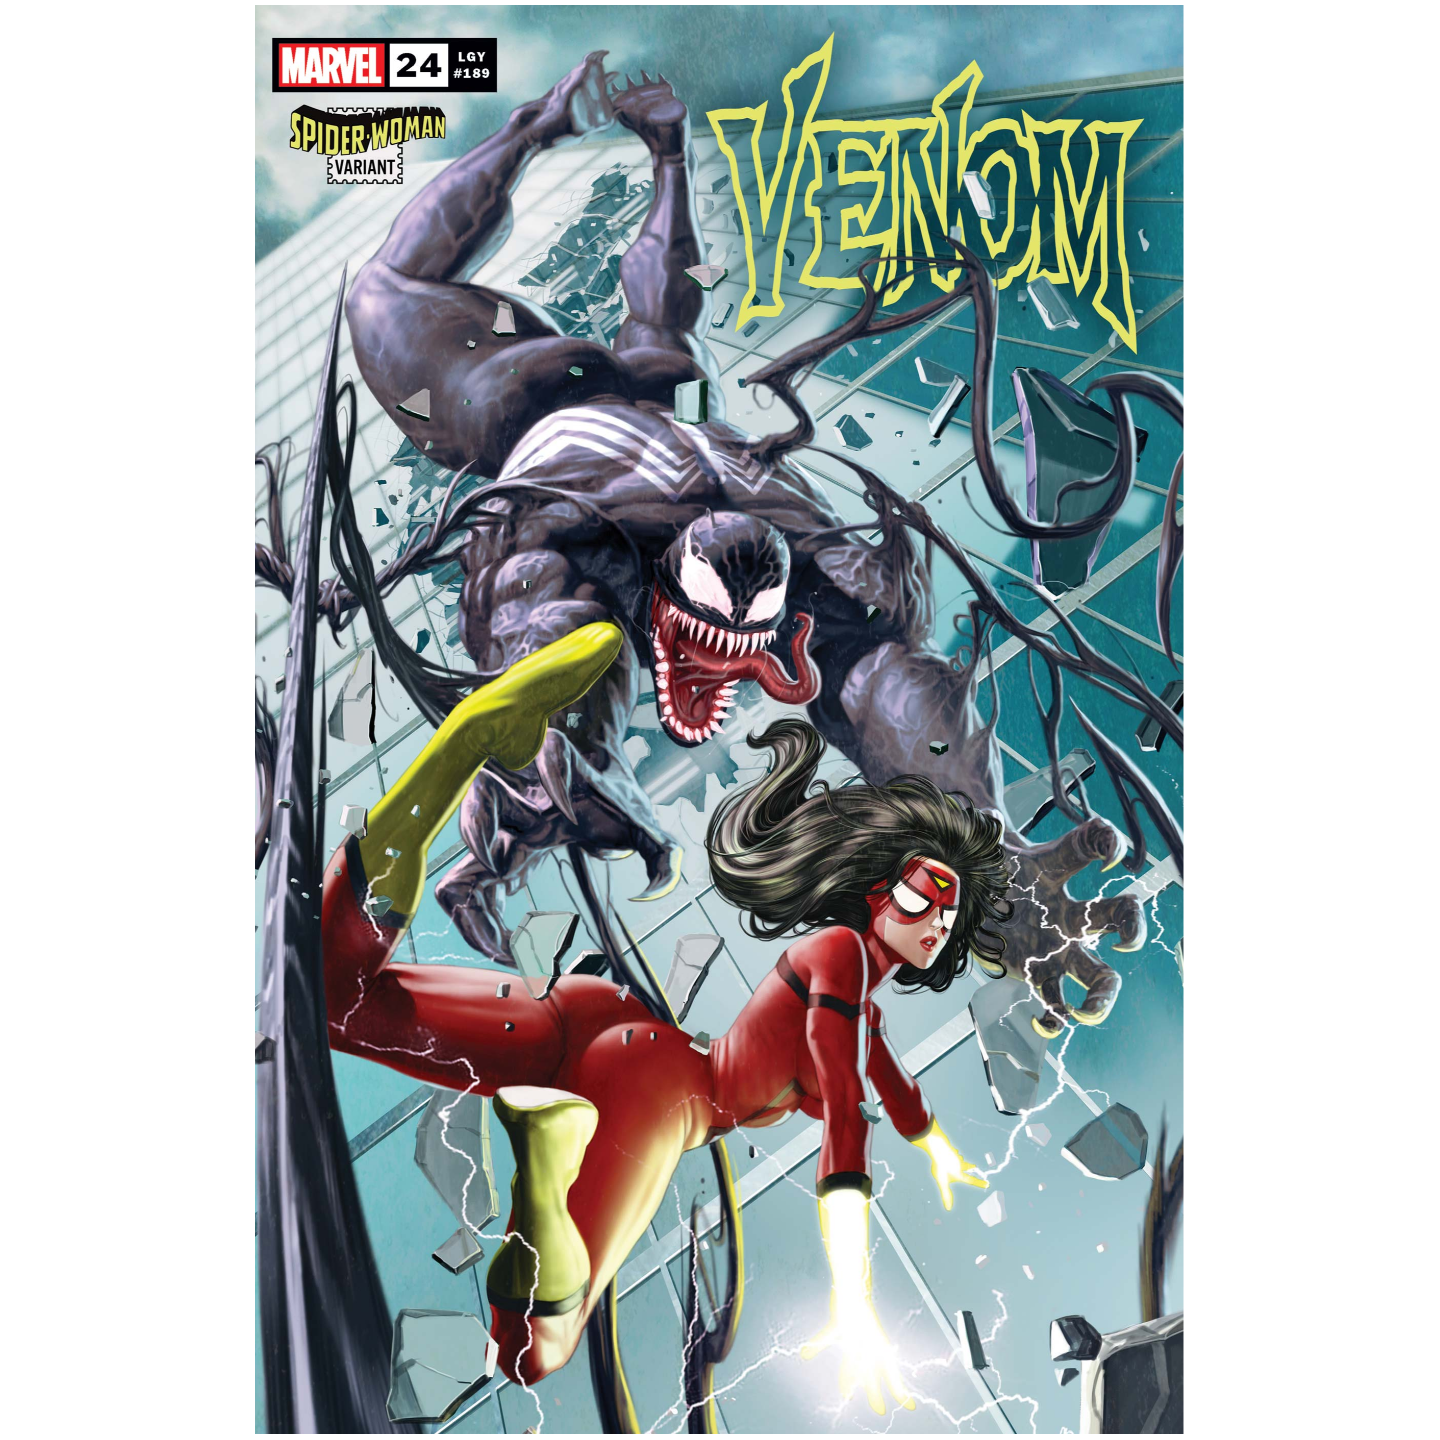 VENOM 24 ROCK-HE KIM SPIDER-WOMAN VAR